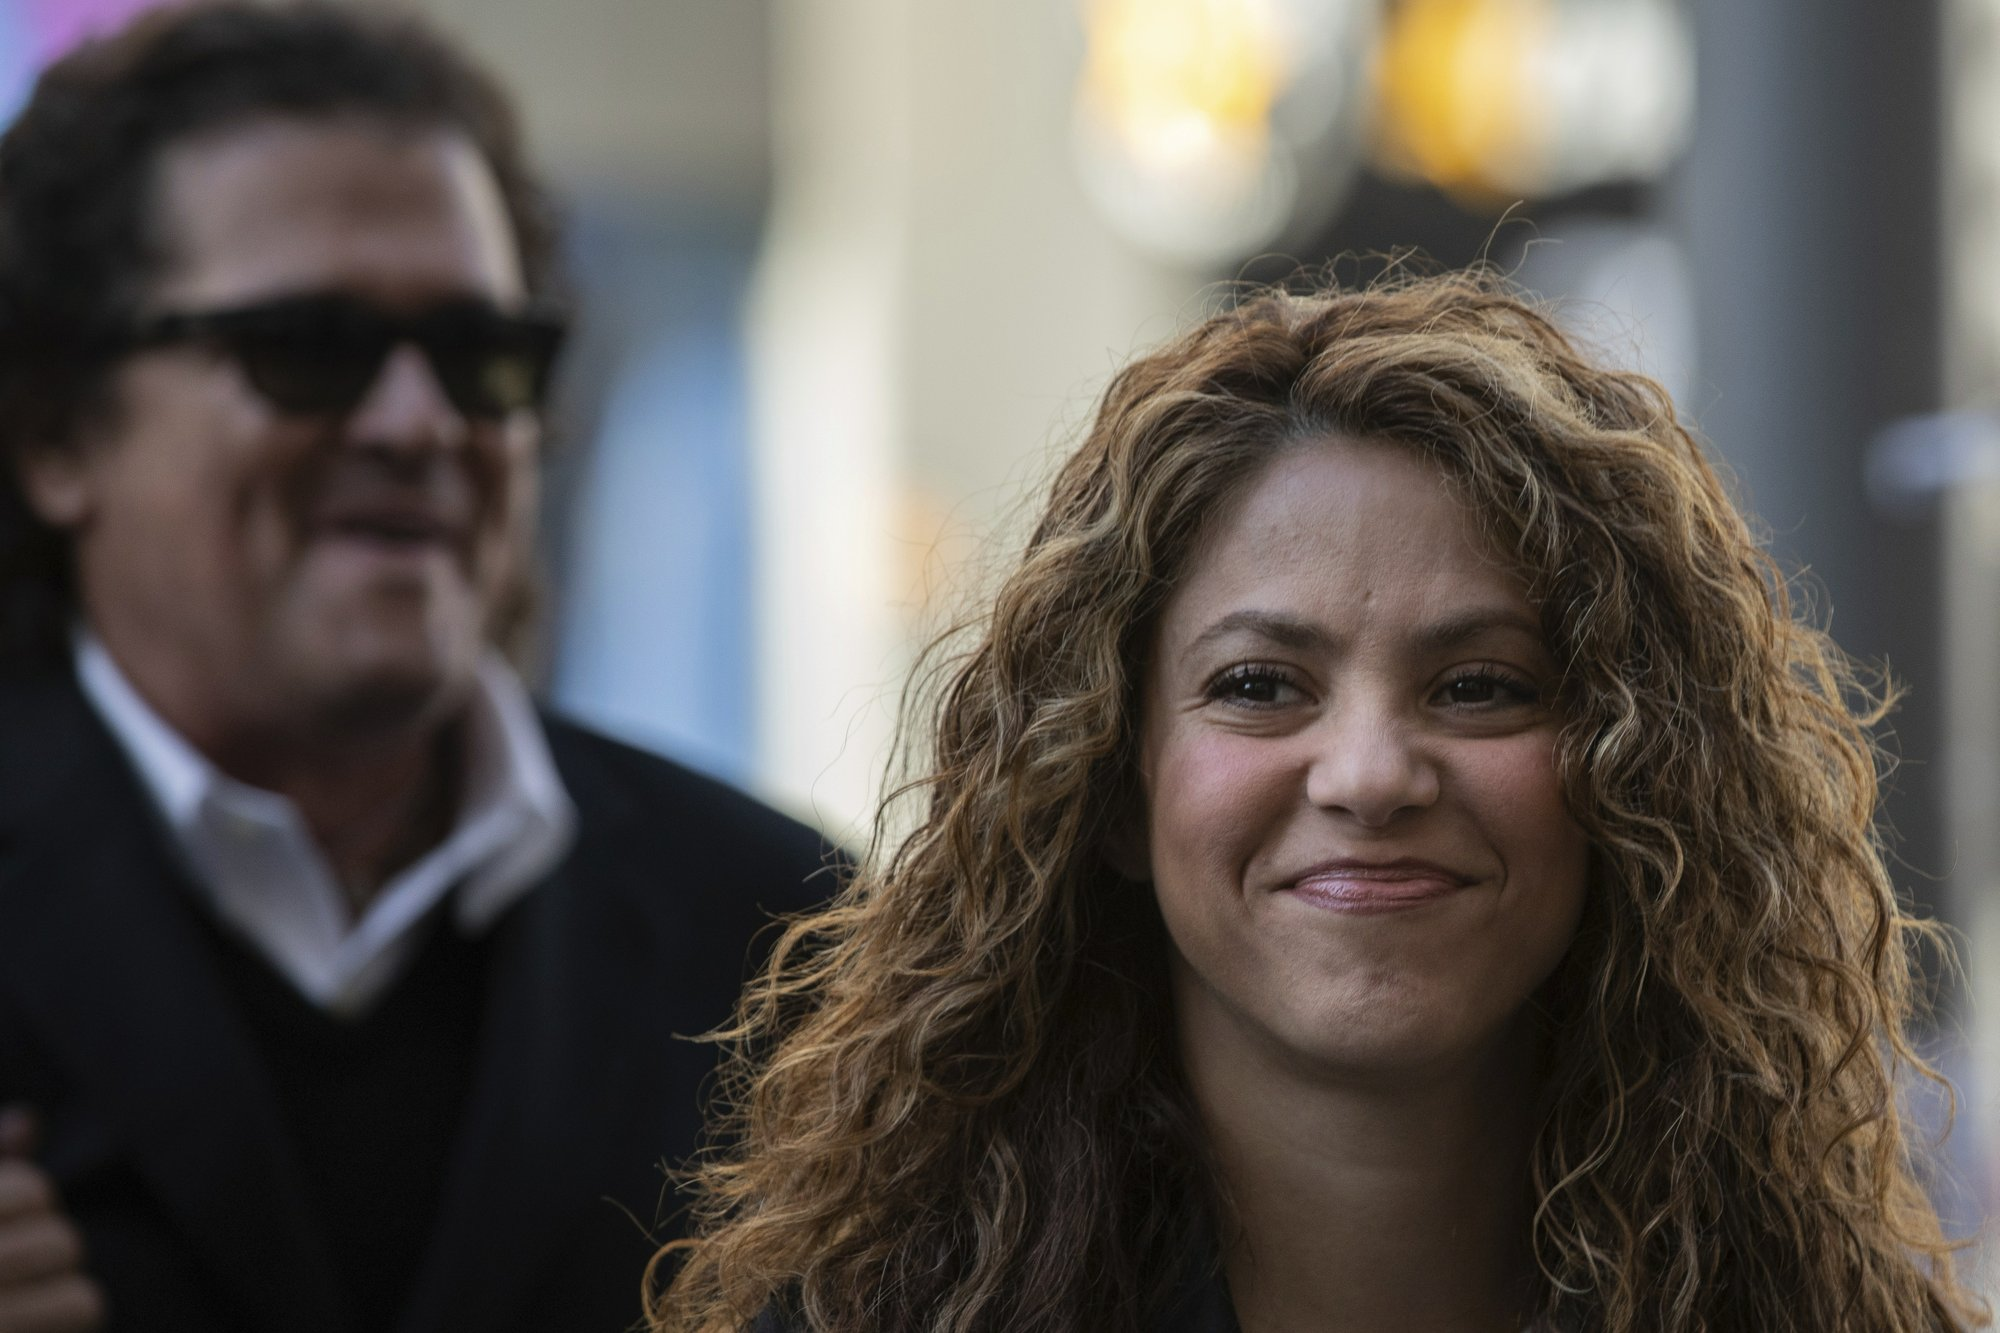 Spanish court clears Shakira, Vives of plagiarism